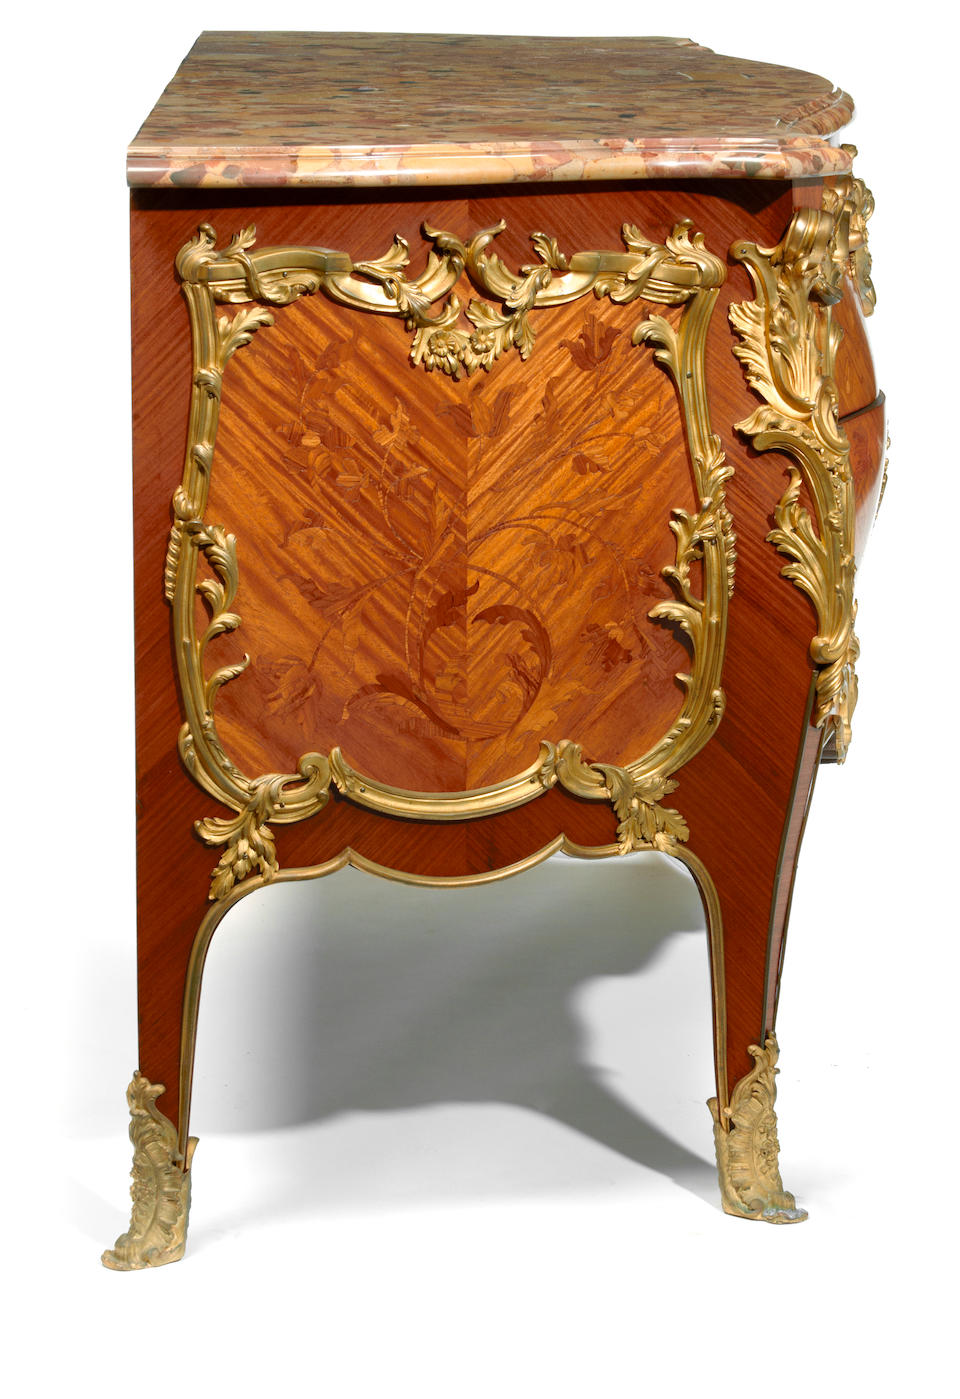 A fine Louis XV style gilt bronze mounted and marquetry inlaid walnut commode  Paul Sormani, after a model by Bernard van Risenburgh fourth quarter 19th century